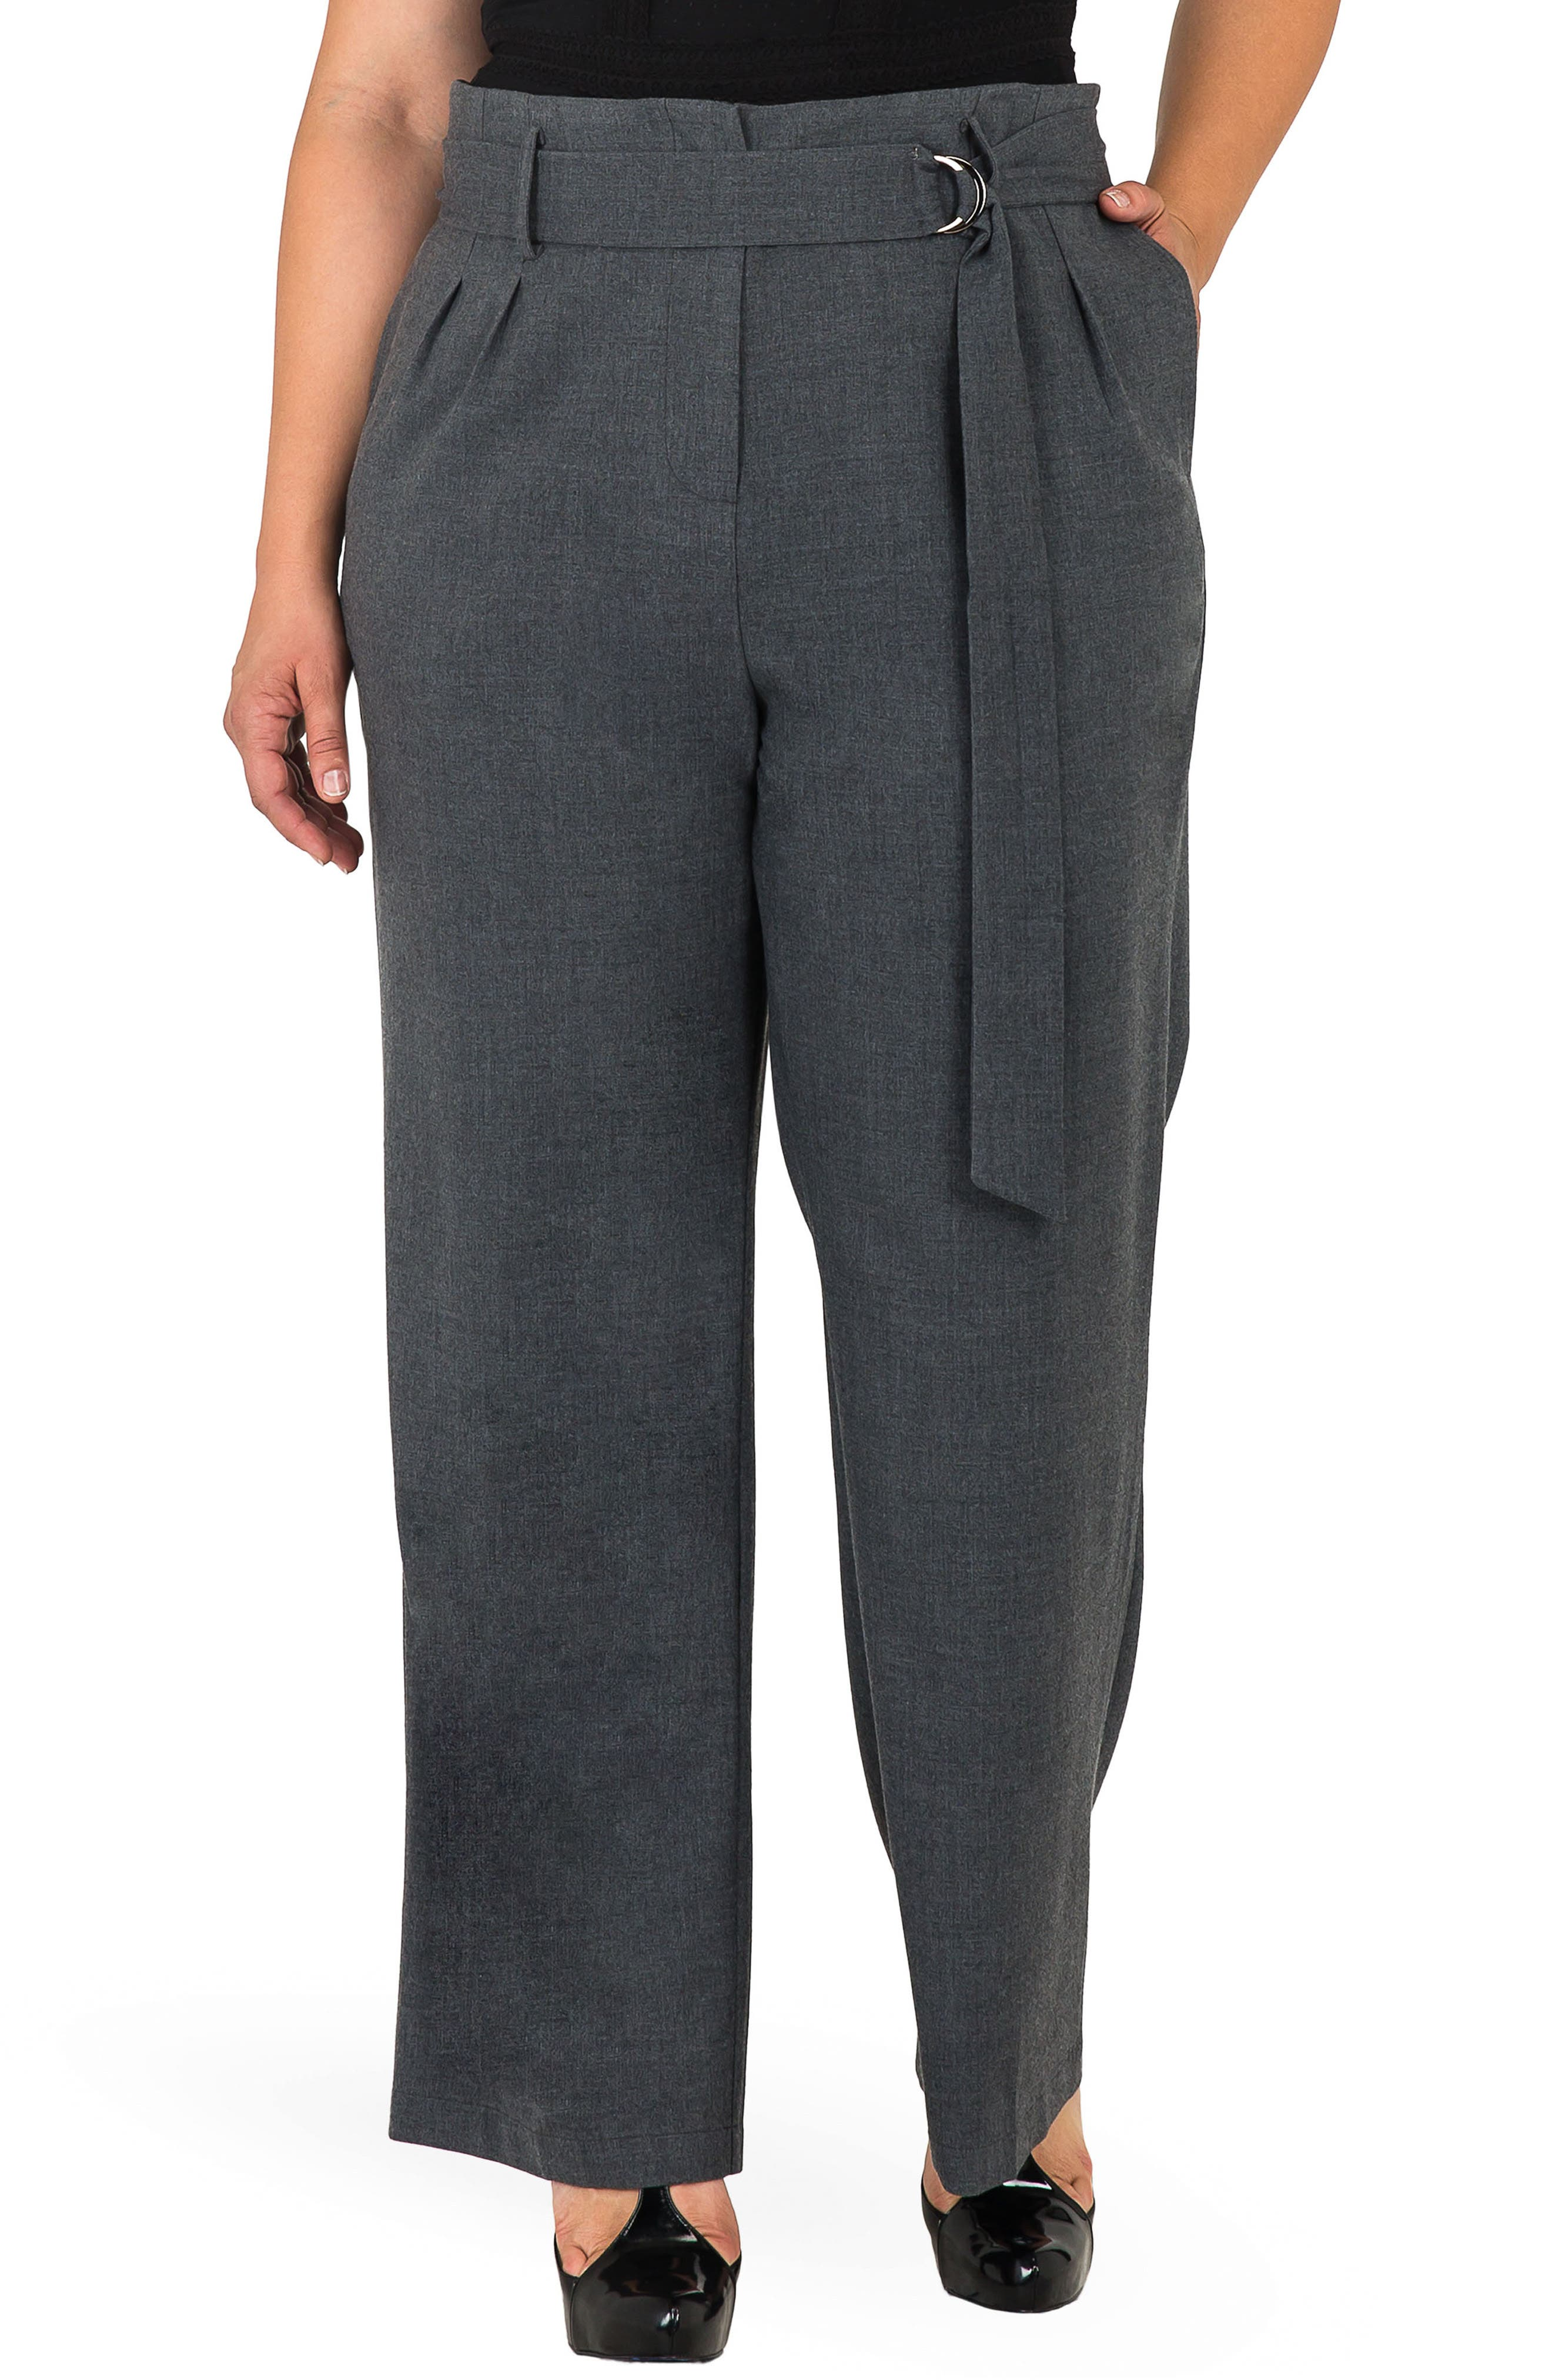 Franchesca High Rise Paperbag Trousers,                         Main,                         color, CHARCOAL